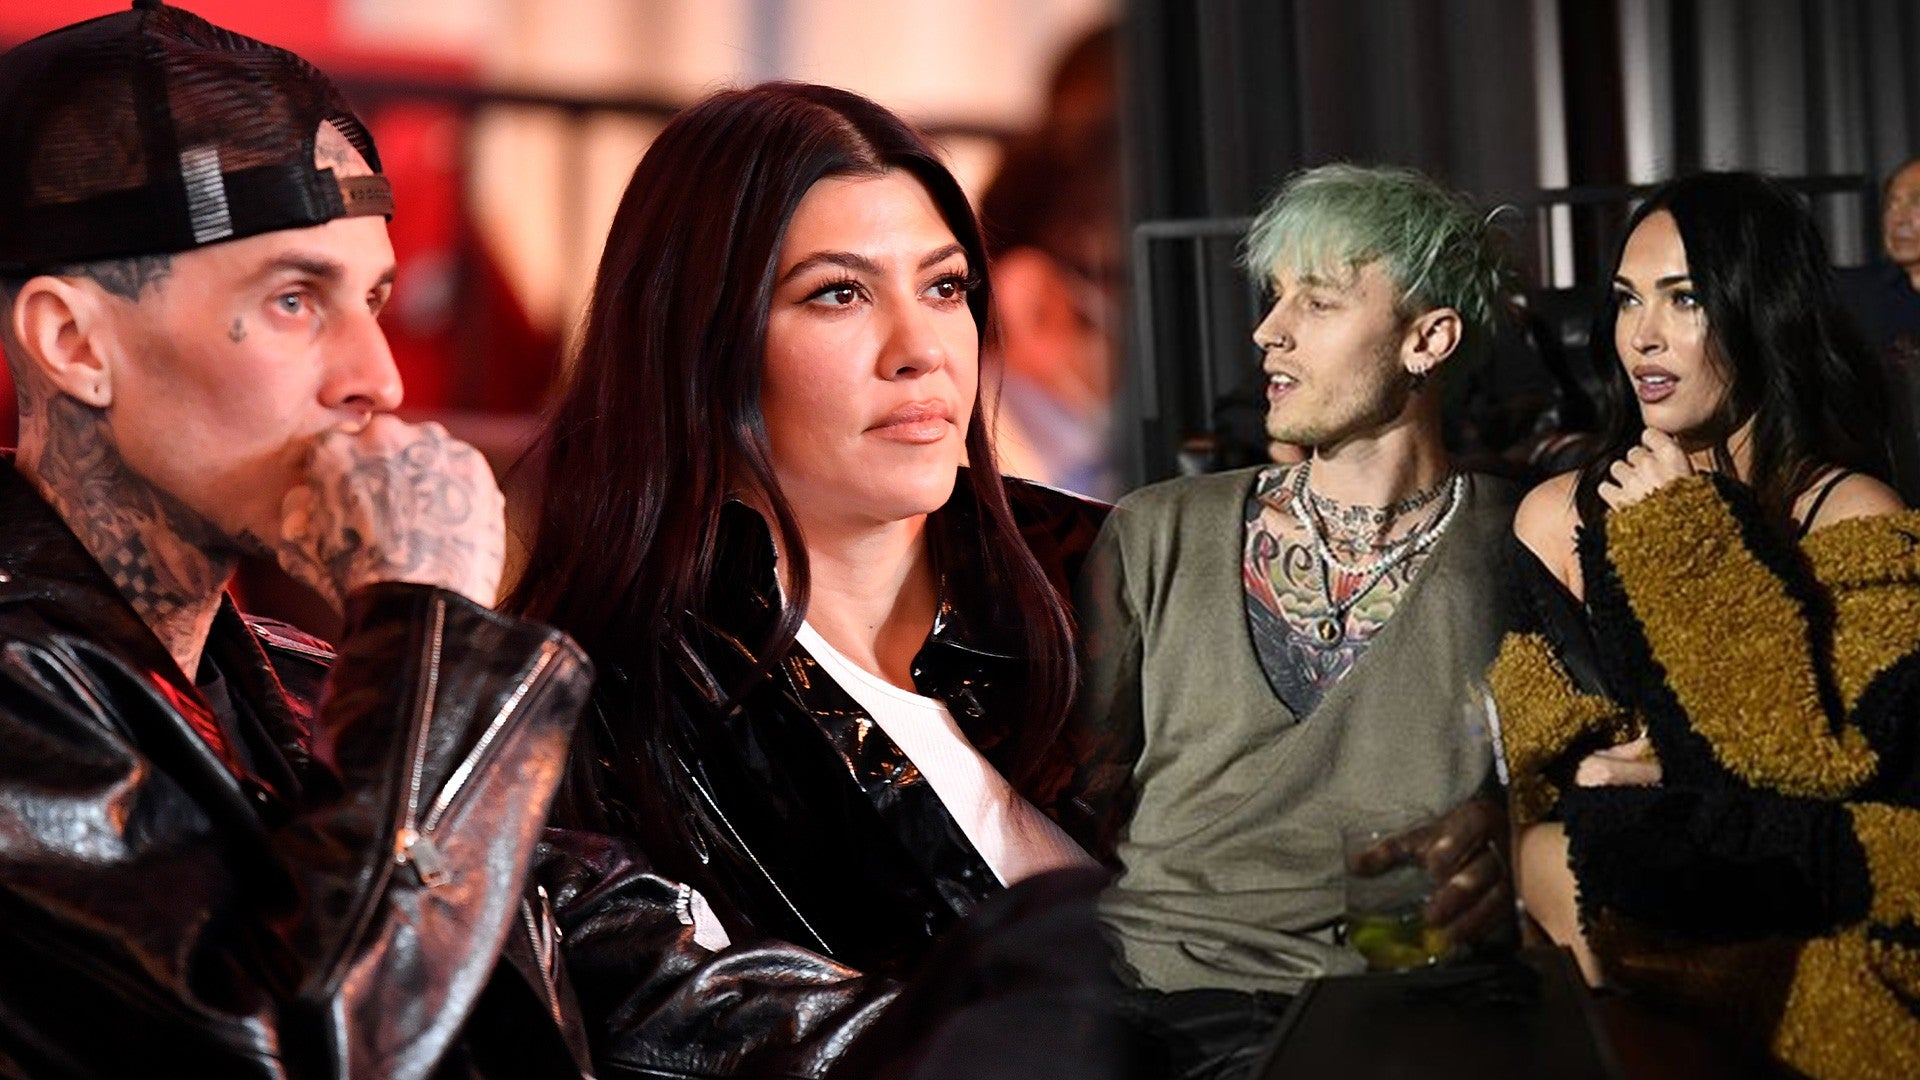 kuwtk-kourtney-kardashian-and-travis-barker-often-go-on-double-dates-with-megan-fox-and-machine-gun-kelly-heres-why